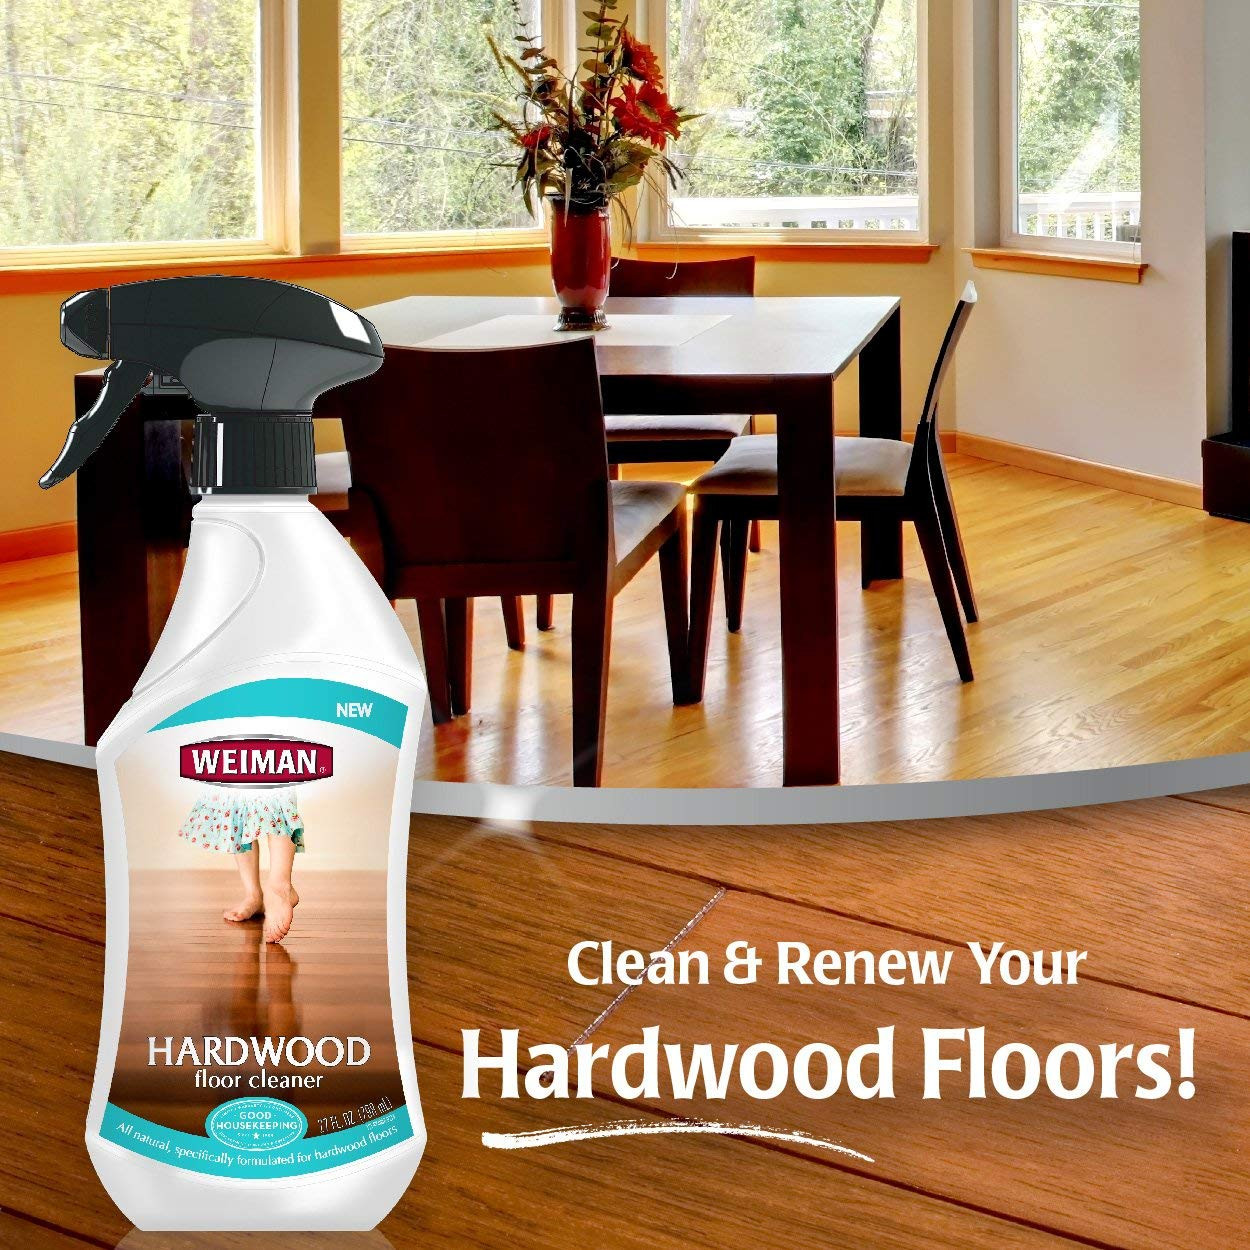 how to refinish hardwood floors easy of amazon com weiman hardwood floor cleaner surface safe no harsh throughout amazon com weiman hardwood floor cleaner surface safe no harsh scent safe for use around kids and pets residue free 27 oz trigger home kitchen